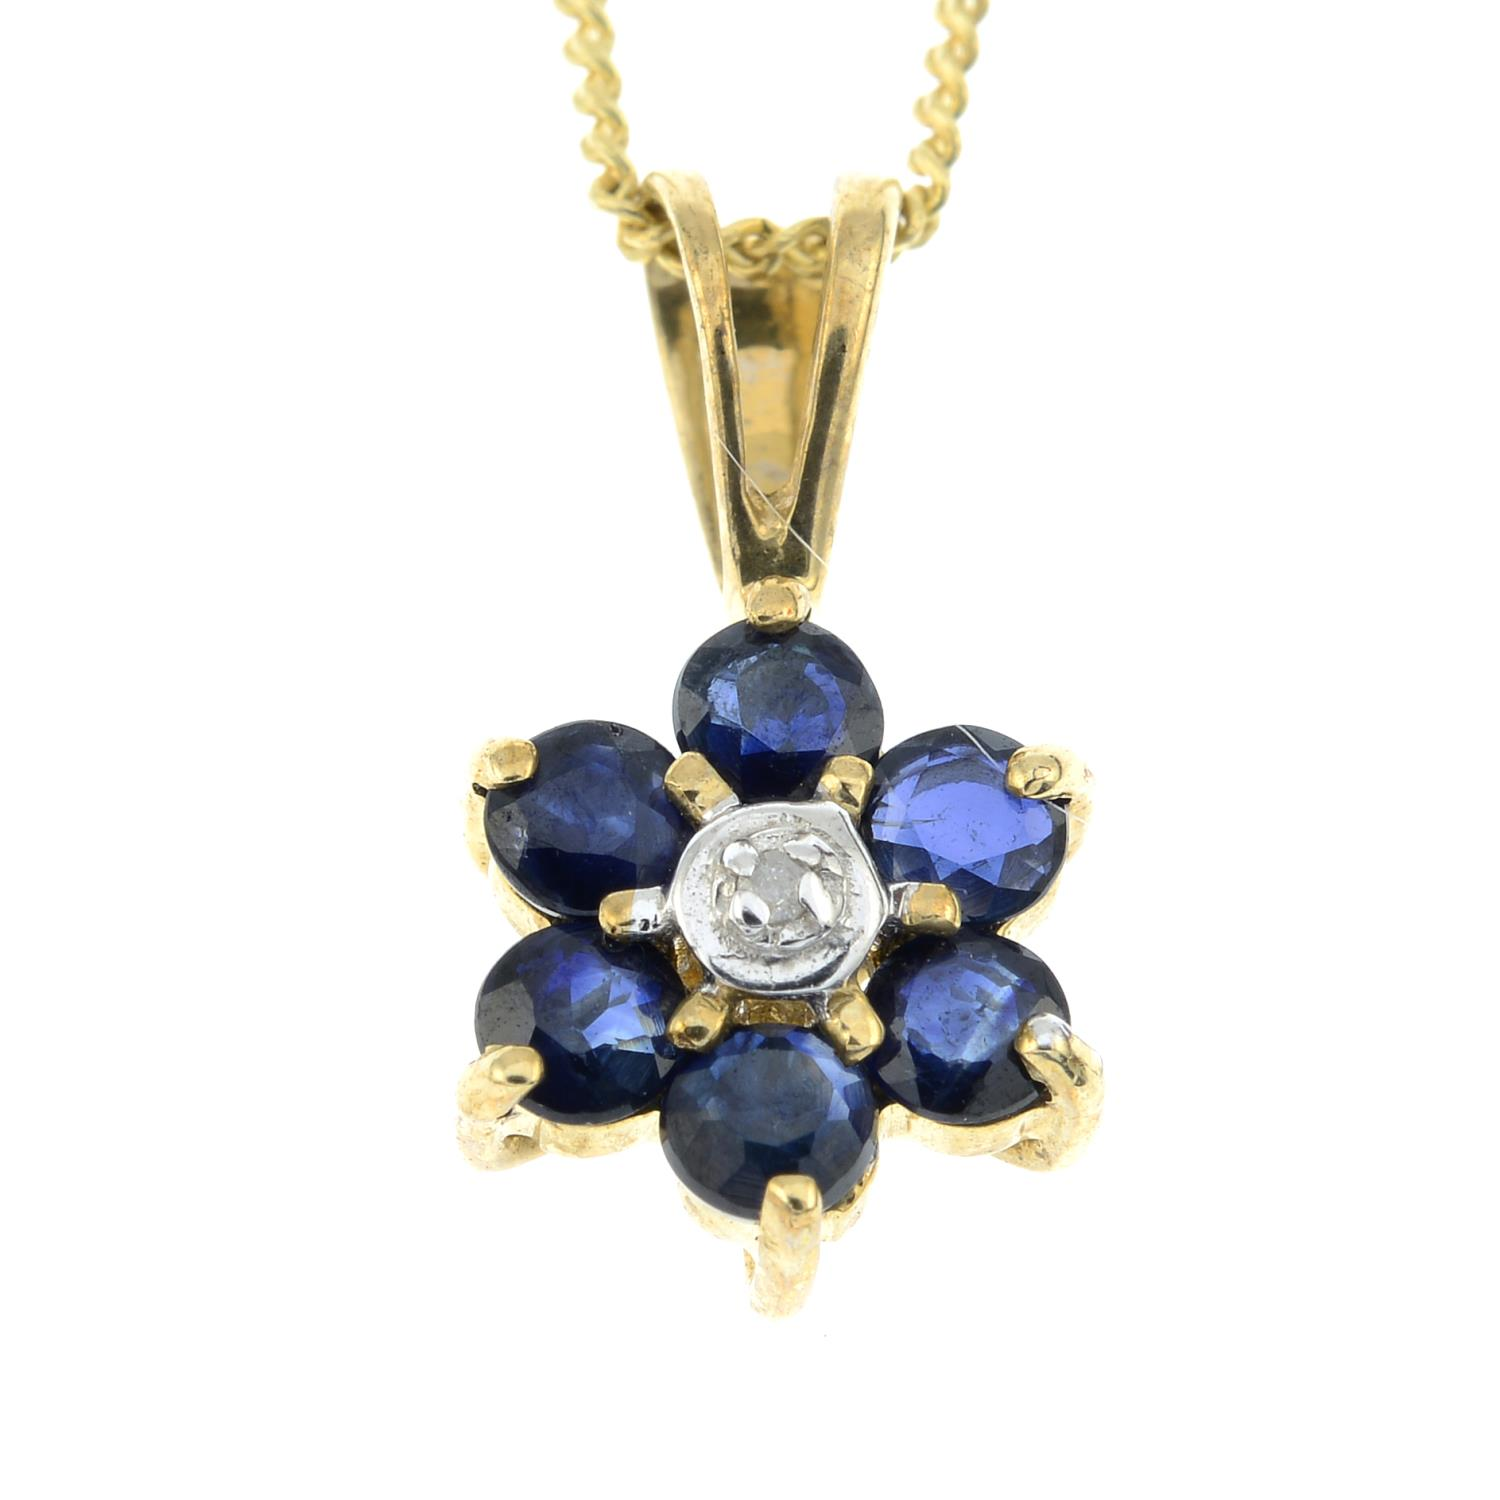 A sapphire and diamond pendant with chain along with a pair of garnet and diamond stud earrings.All